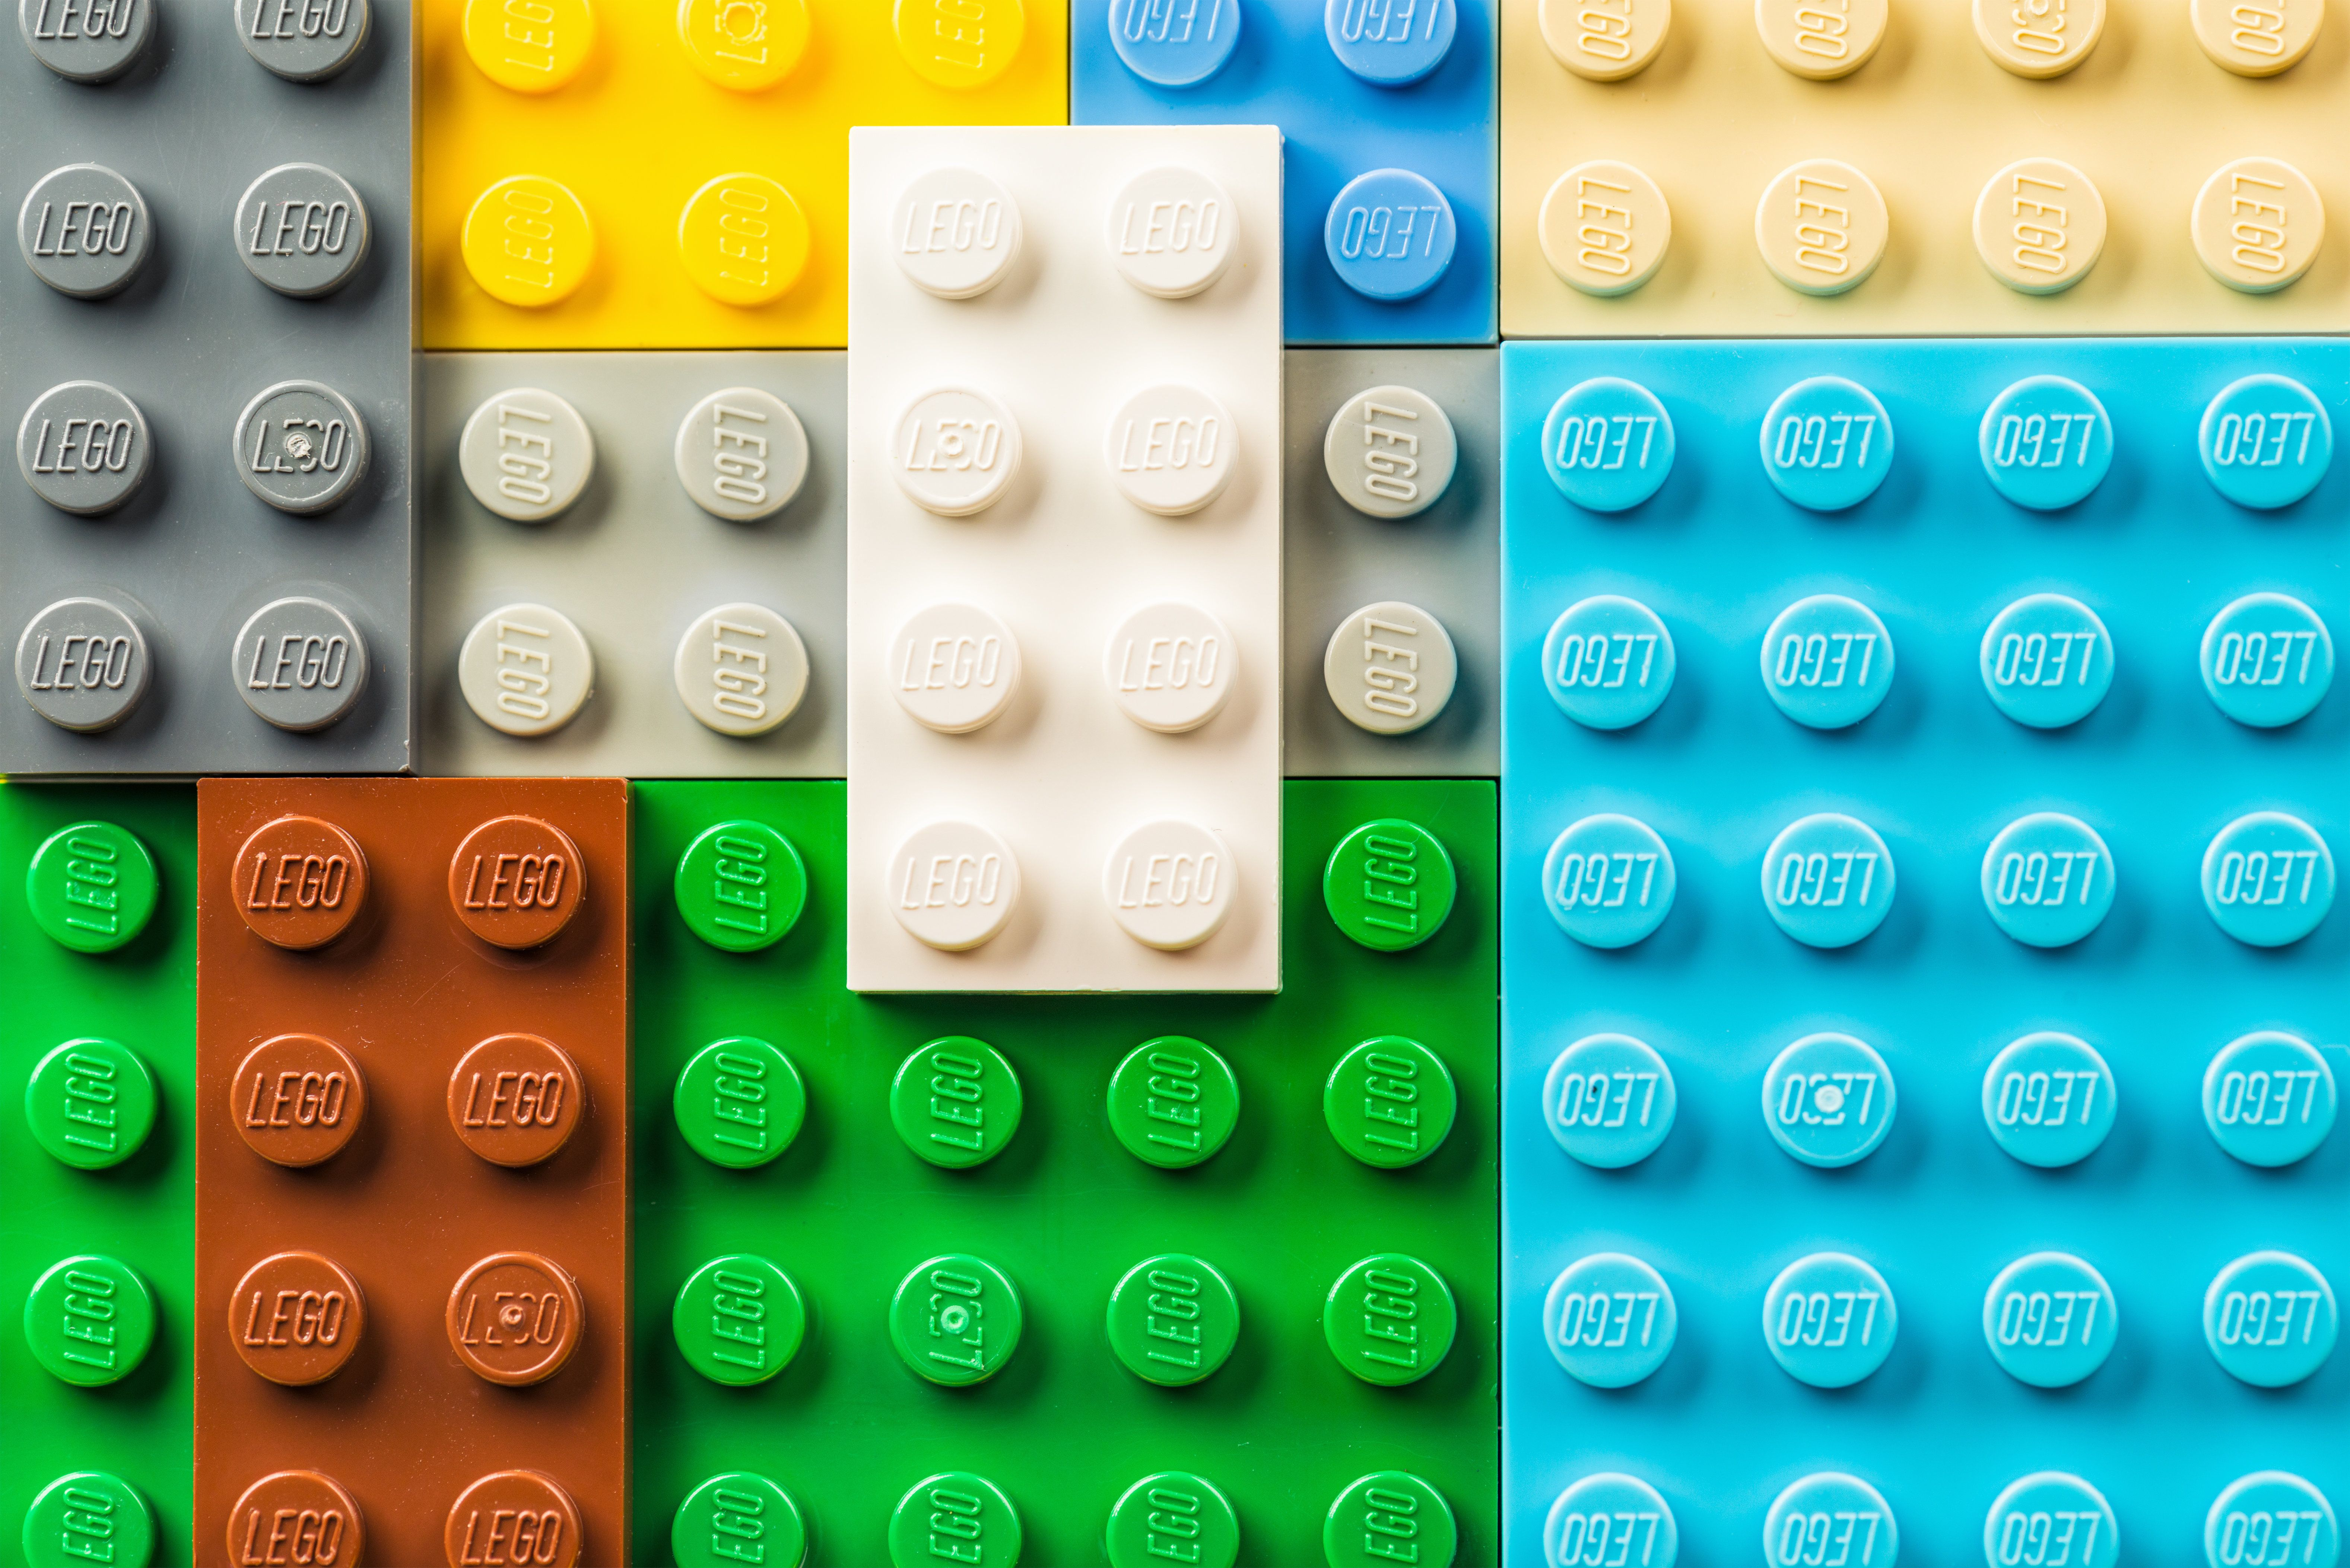 Edinburgh, UK - February 19, 2016: A macro image of Lego pieces arranged together. Lego branding is visible on each raised circle.